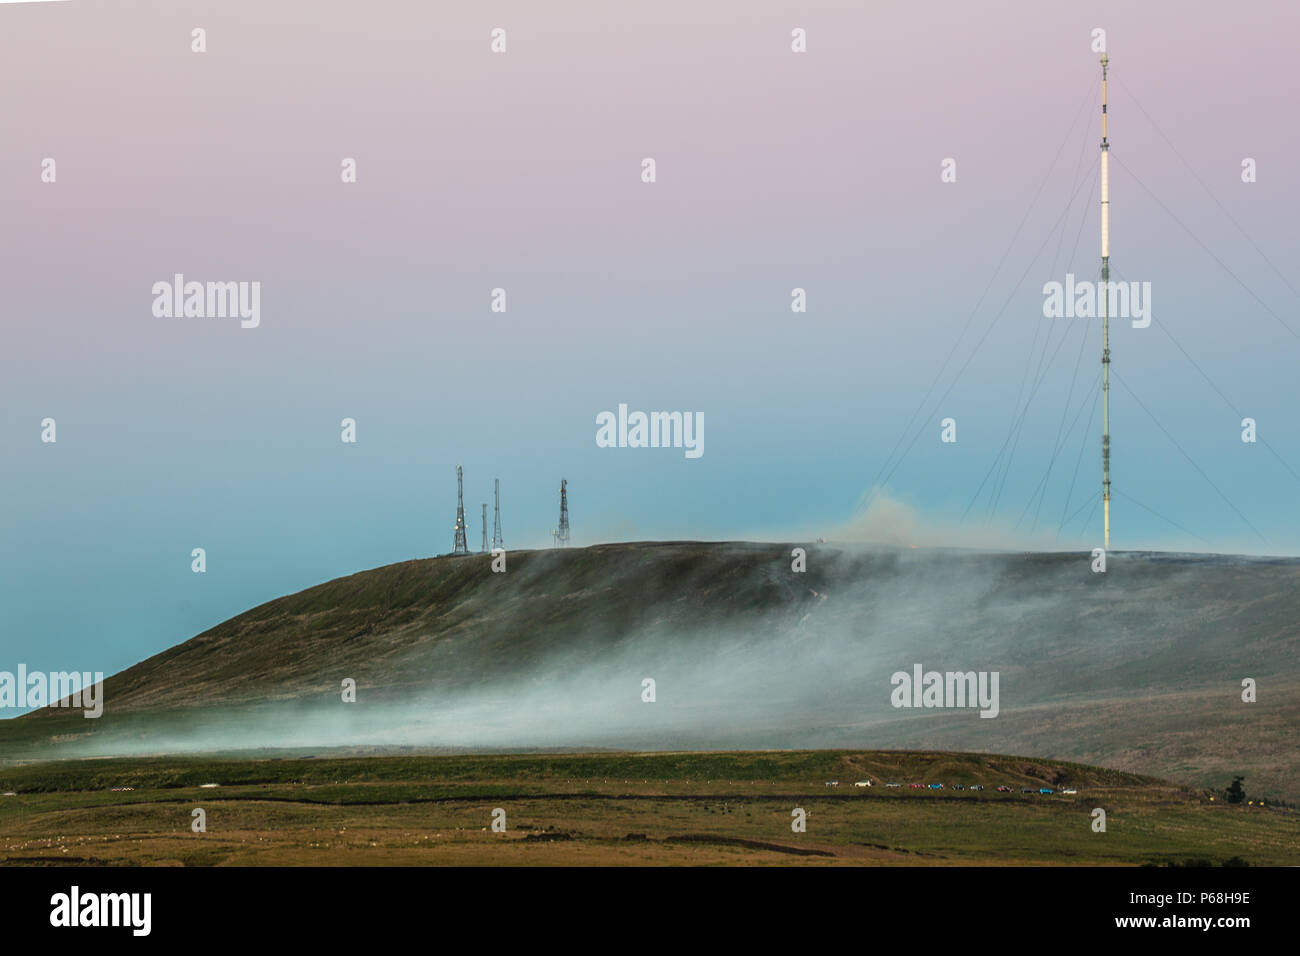 Winter Hill, Greater Manchester, UK. 28th Jun, 2018. Smoke from a grass fire rolls down the moors beneath the Winter Hill transmission masts. Credit: Jason Smalley Photography/Alamy Live News Stock Photo